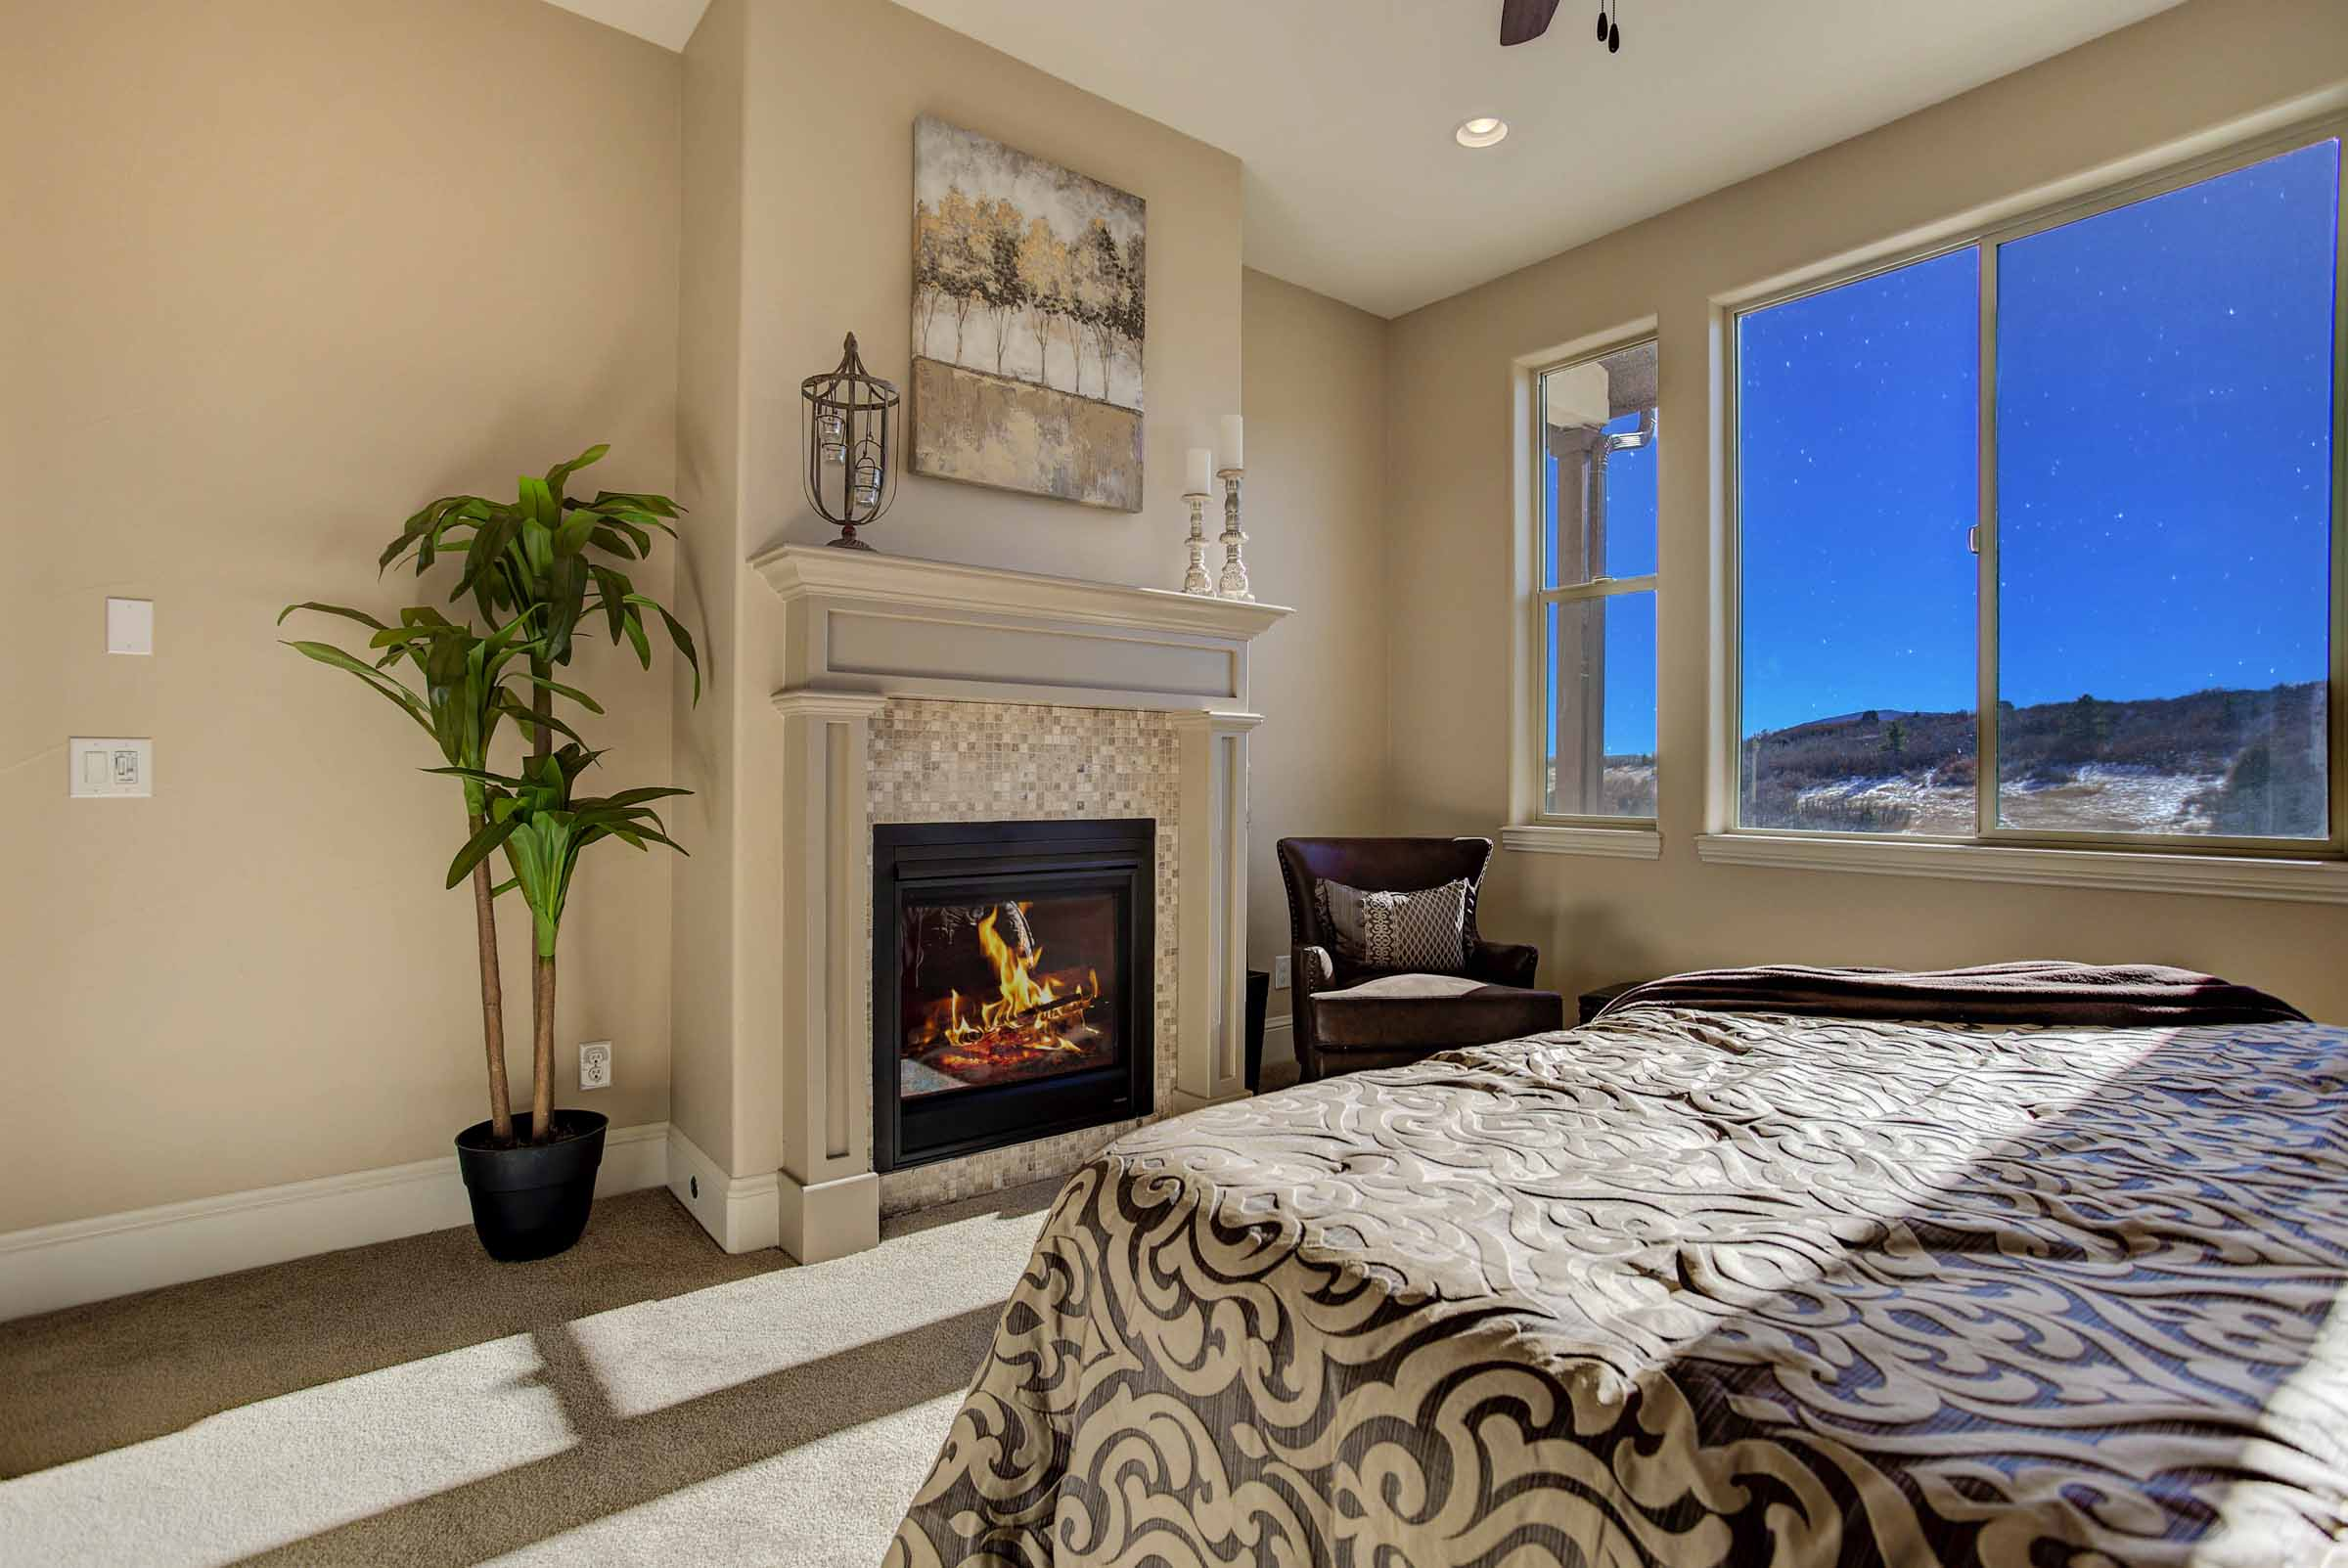 Luxury Main Level Master Bedroom w/ Fireplace